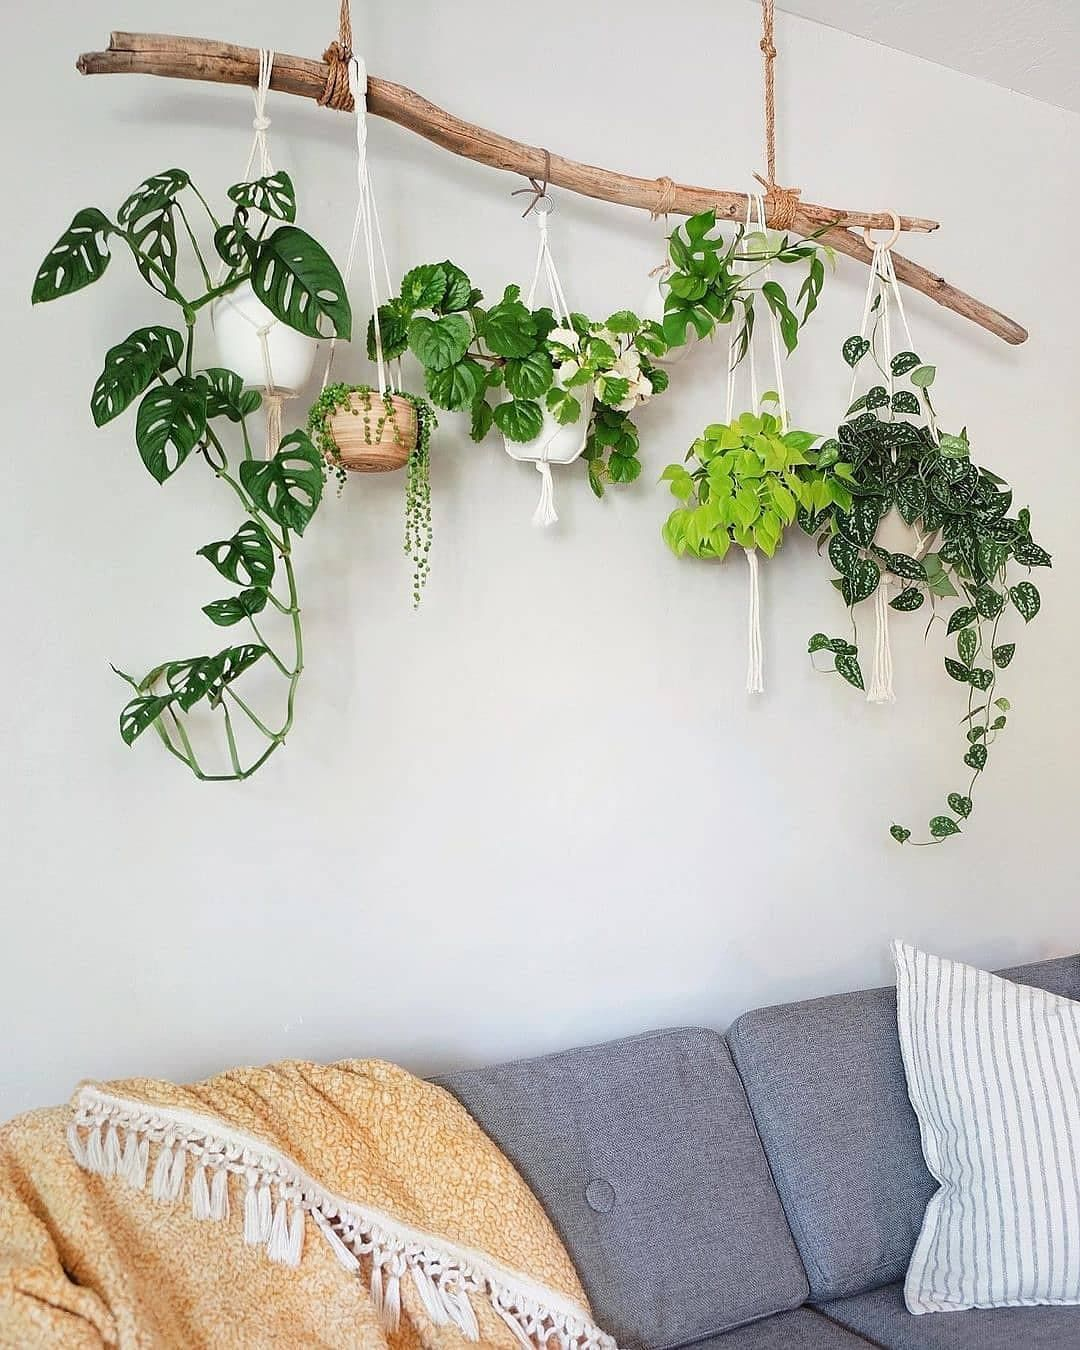 """Plantcubby on Instagram: """"Follow us for inspiration and to spread the love of beautiful Indoor Plant Decor 🌿  🌿 @plantcubby  _______________________ 😍 Follow:…"""""""